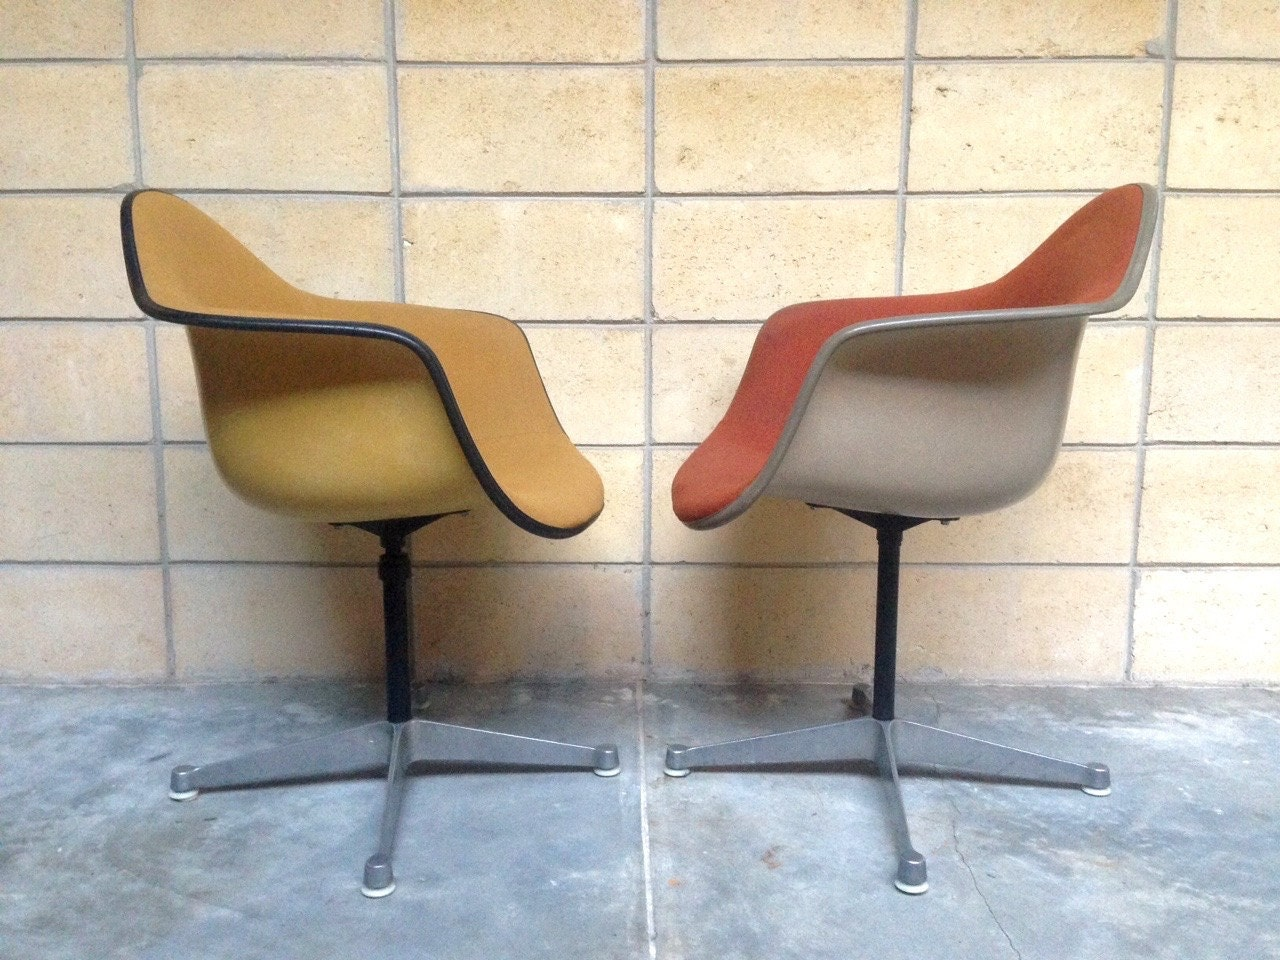 Rare pair of vintage eames fiberglass armchairs on contract swivel bases by herman miller - Herman miller bucket chair ...